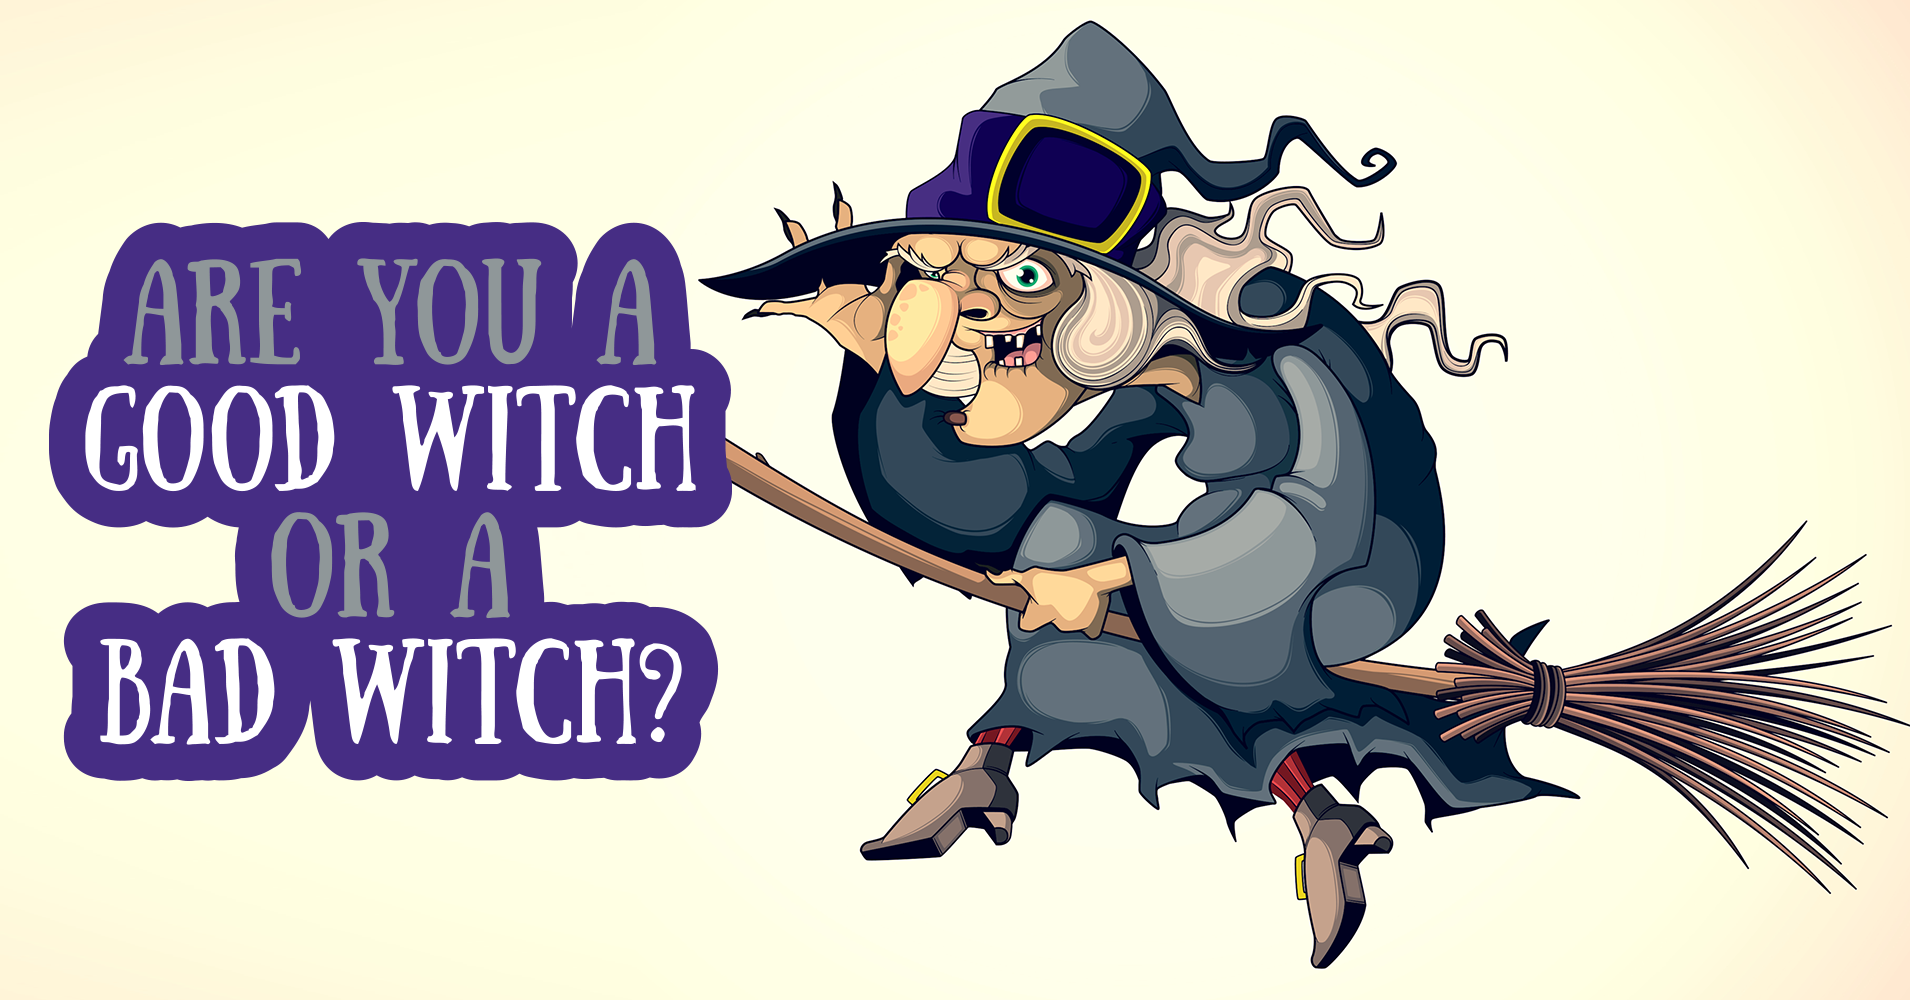 0135819bc98 Are You A Good Witch Or A Bad Witch? - Quiz - Quizony.com